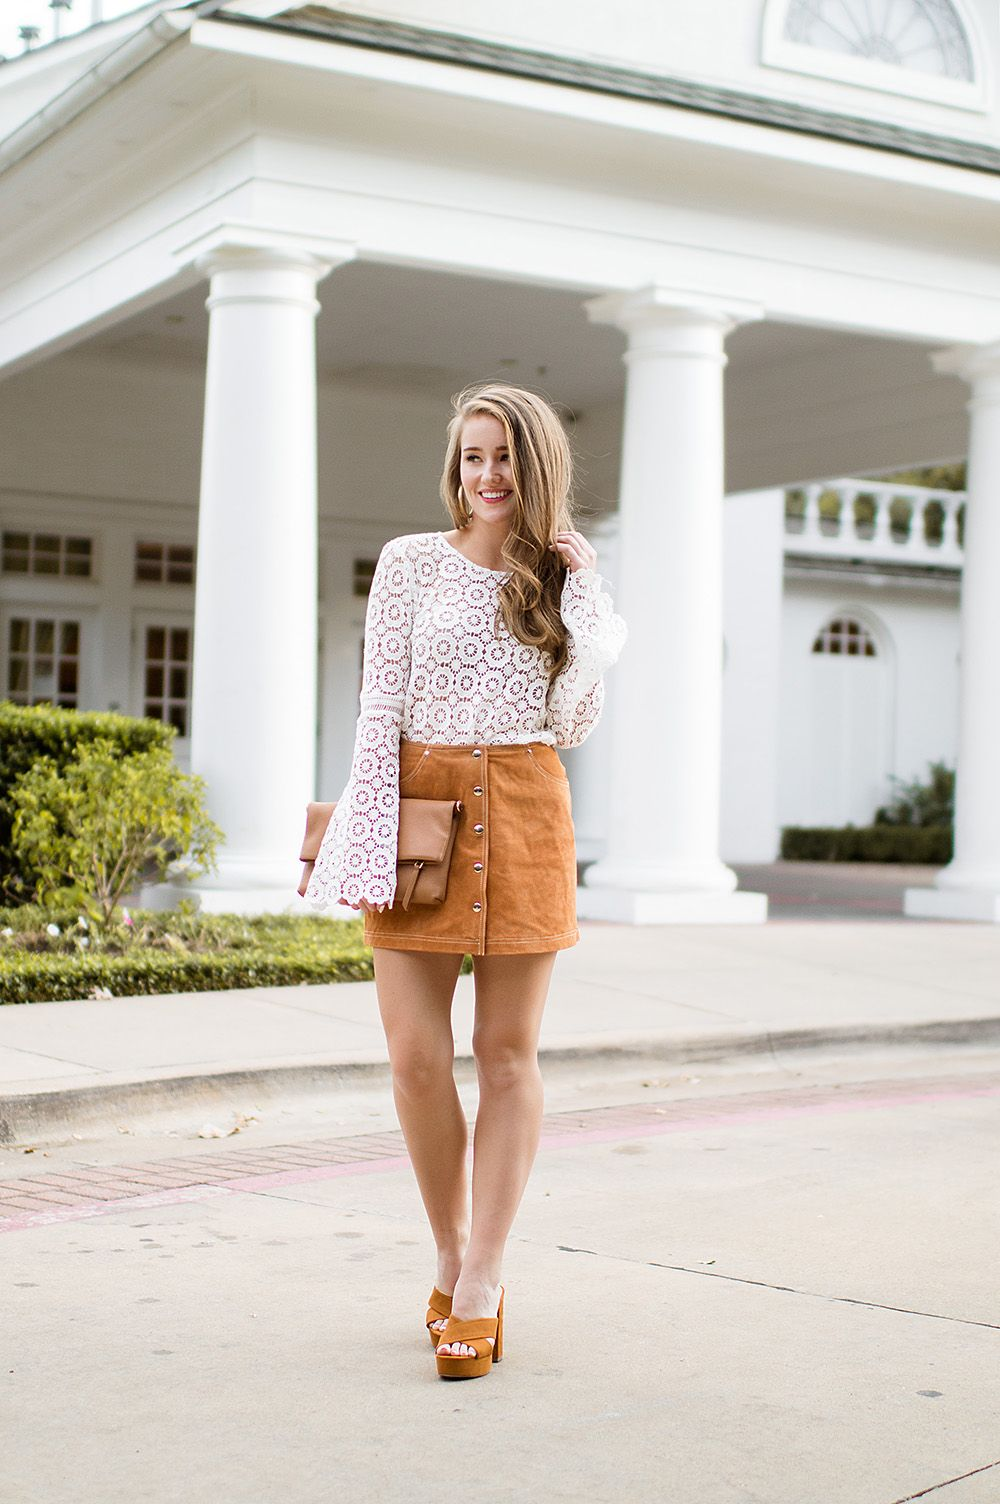 The perfect suede skirt and heels | how to style a suede skirt | fall fashion | fall style | styling a skirt for fall || A Lonestar State of Southern